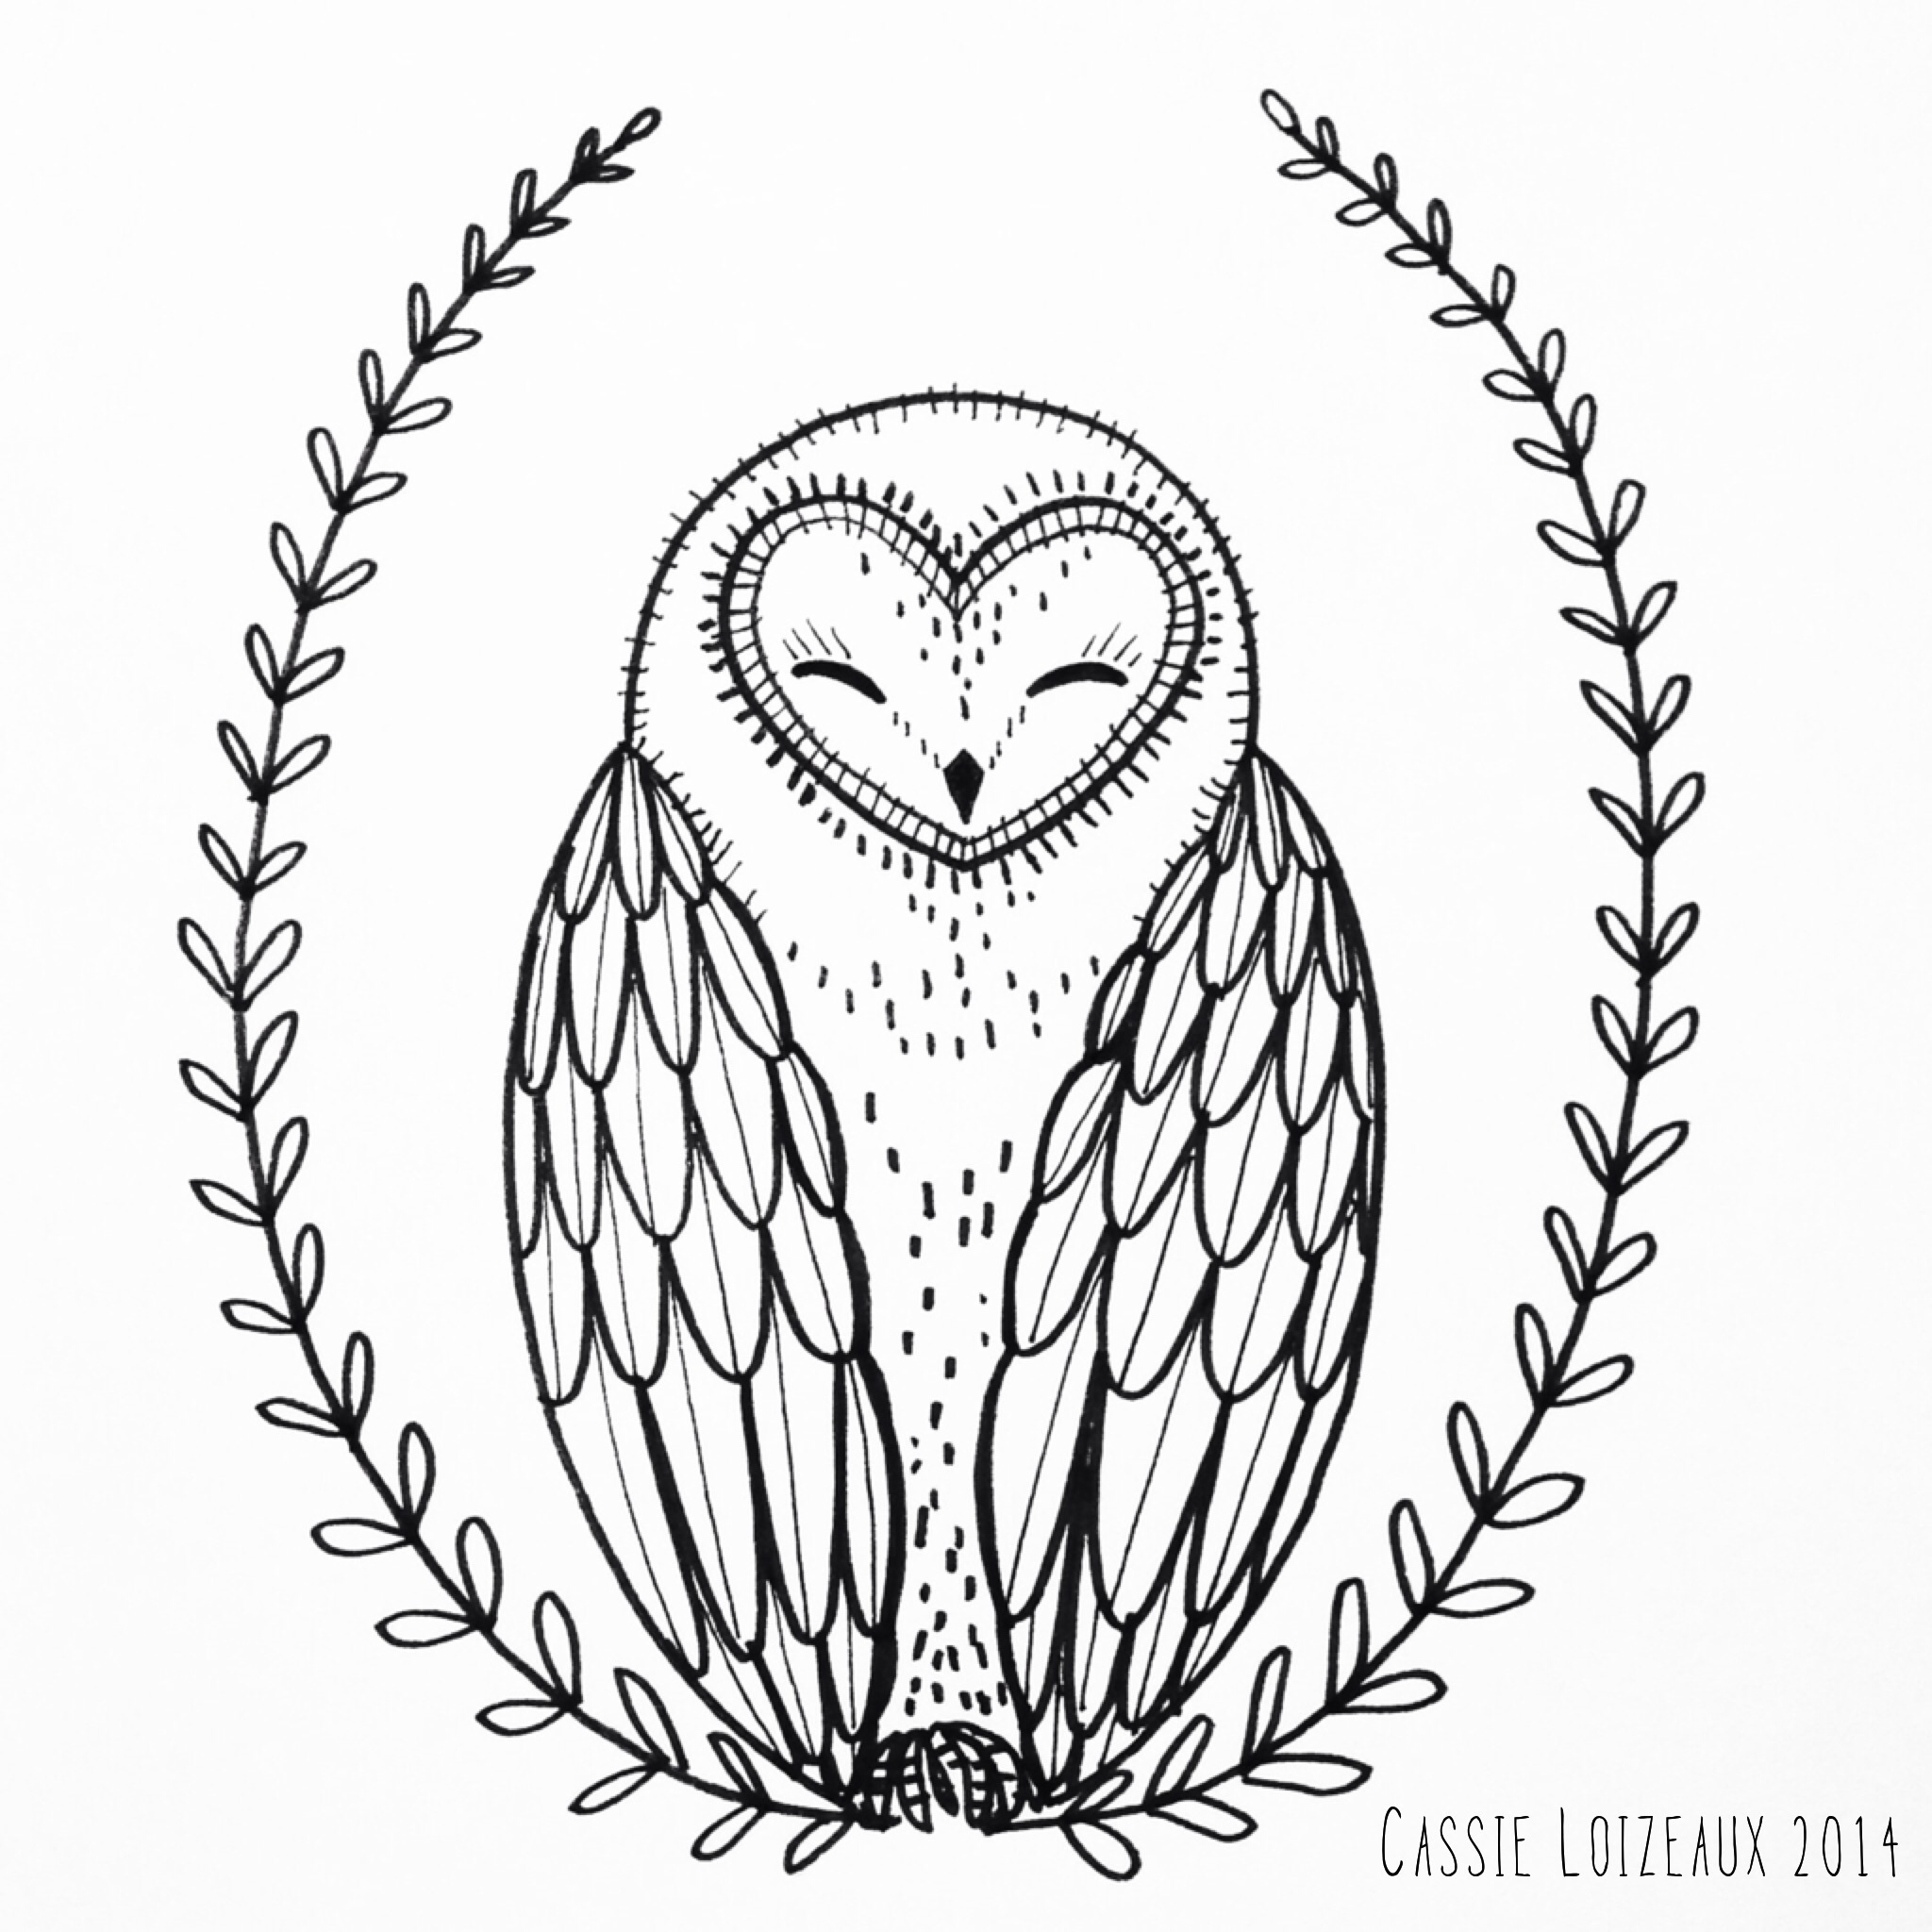 2048x2048 Sleeping Owl. Day 81 Of Yearlong Sketchbook Project. Cassie